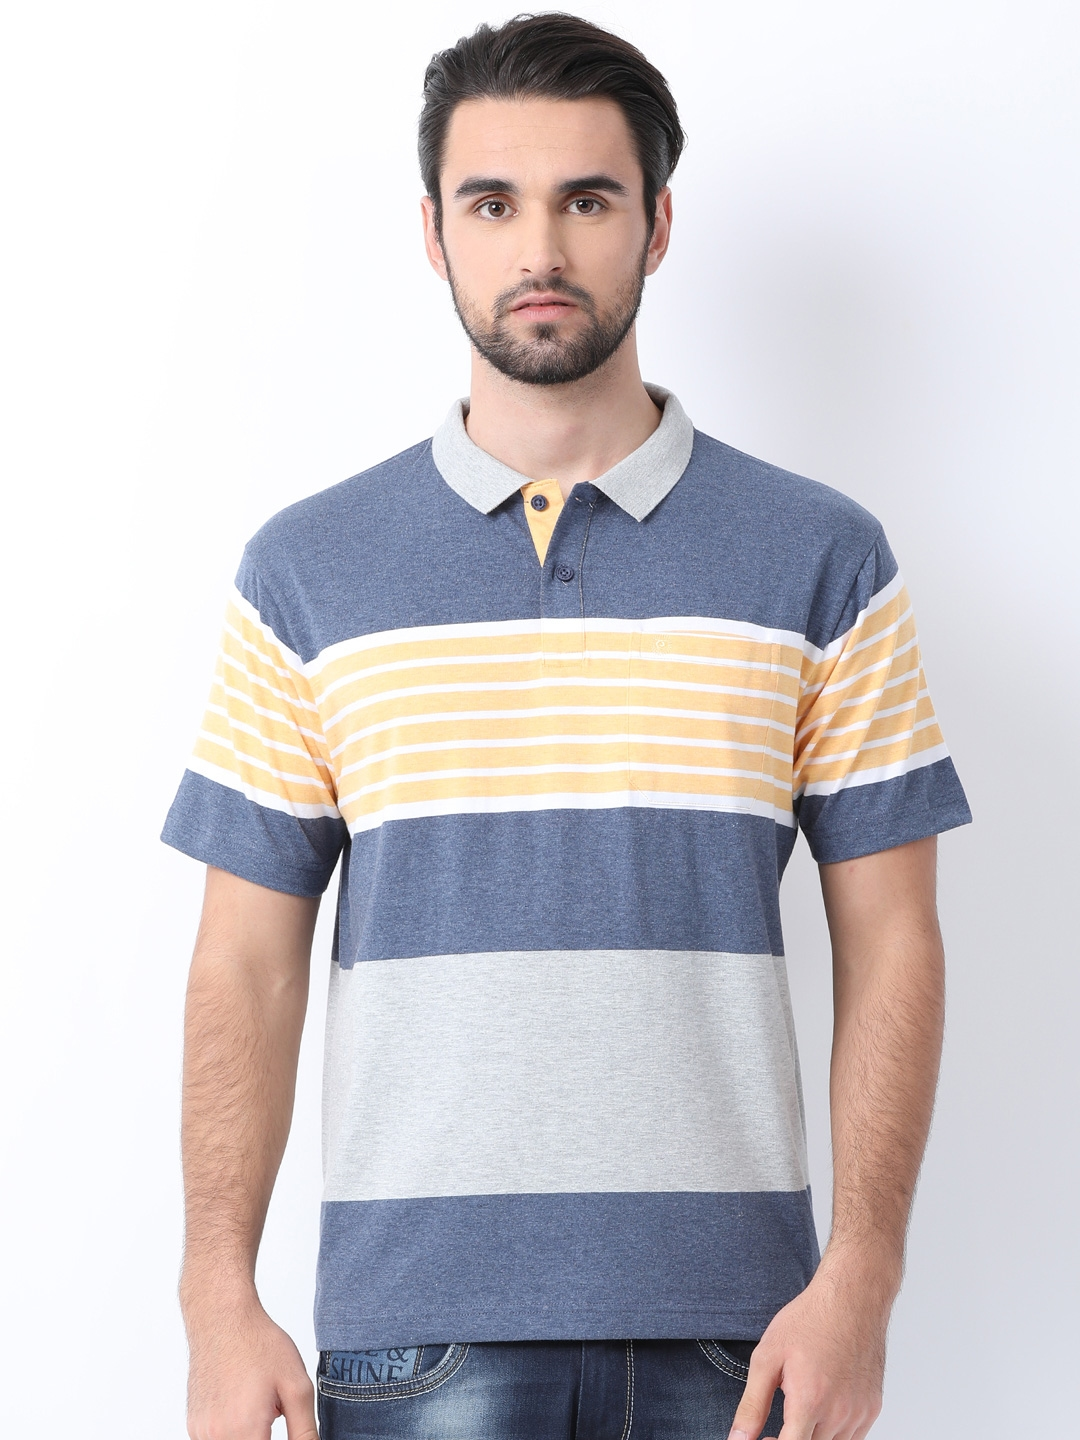 c2ce4ce75225 Buy Classic Polo Men Blue Striped Polo Collar T Shirt - Tshirts for ...